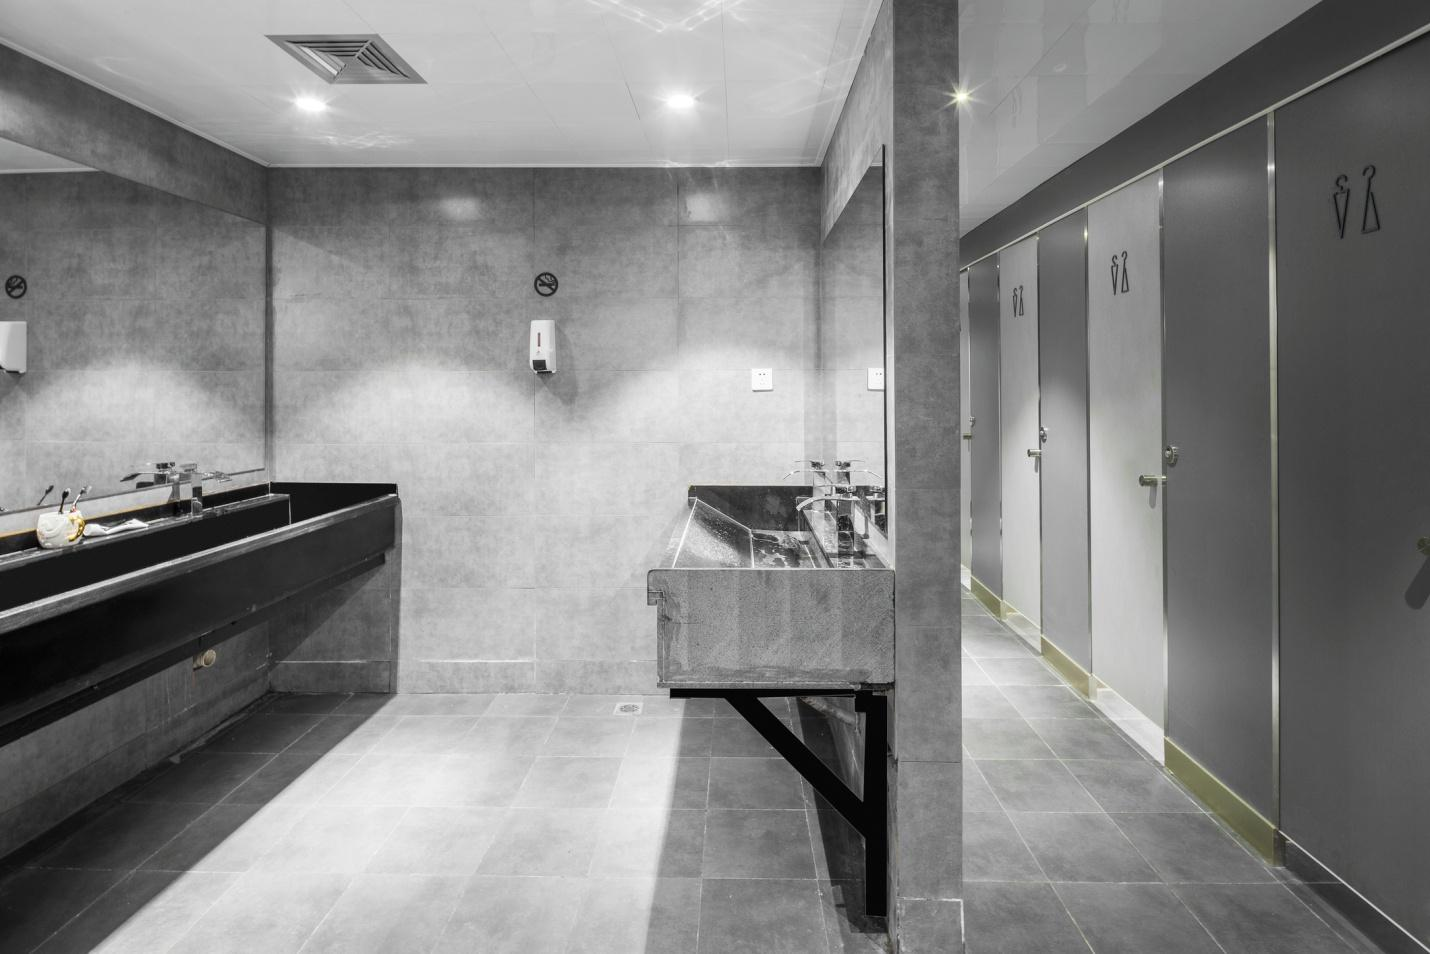 Interior of modern commercial bathroom stalls and partitions